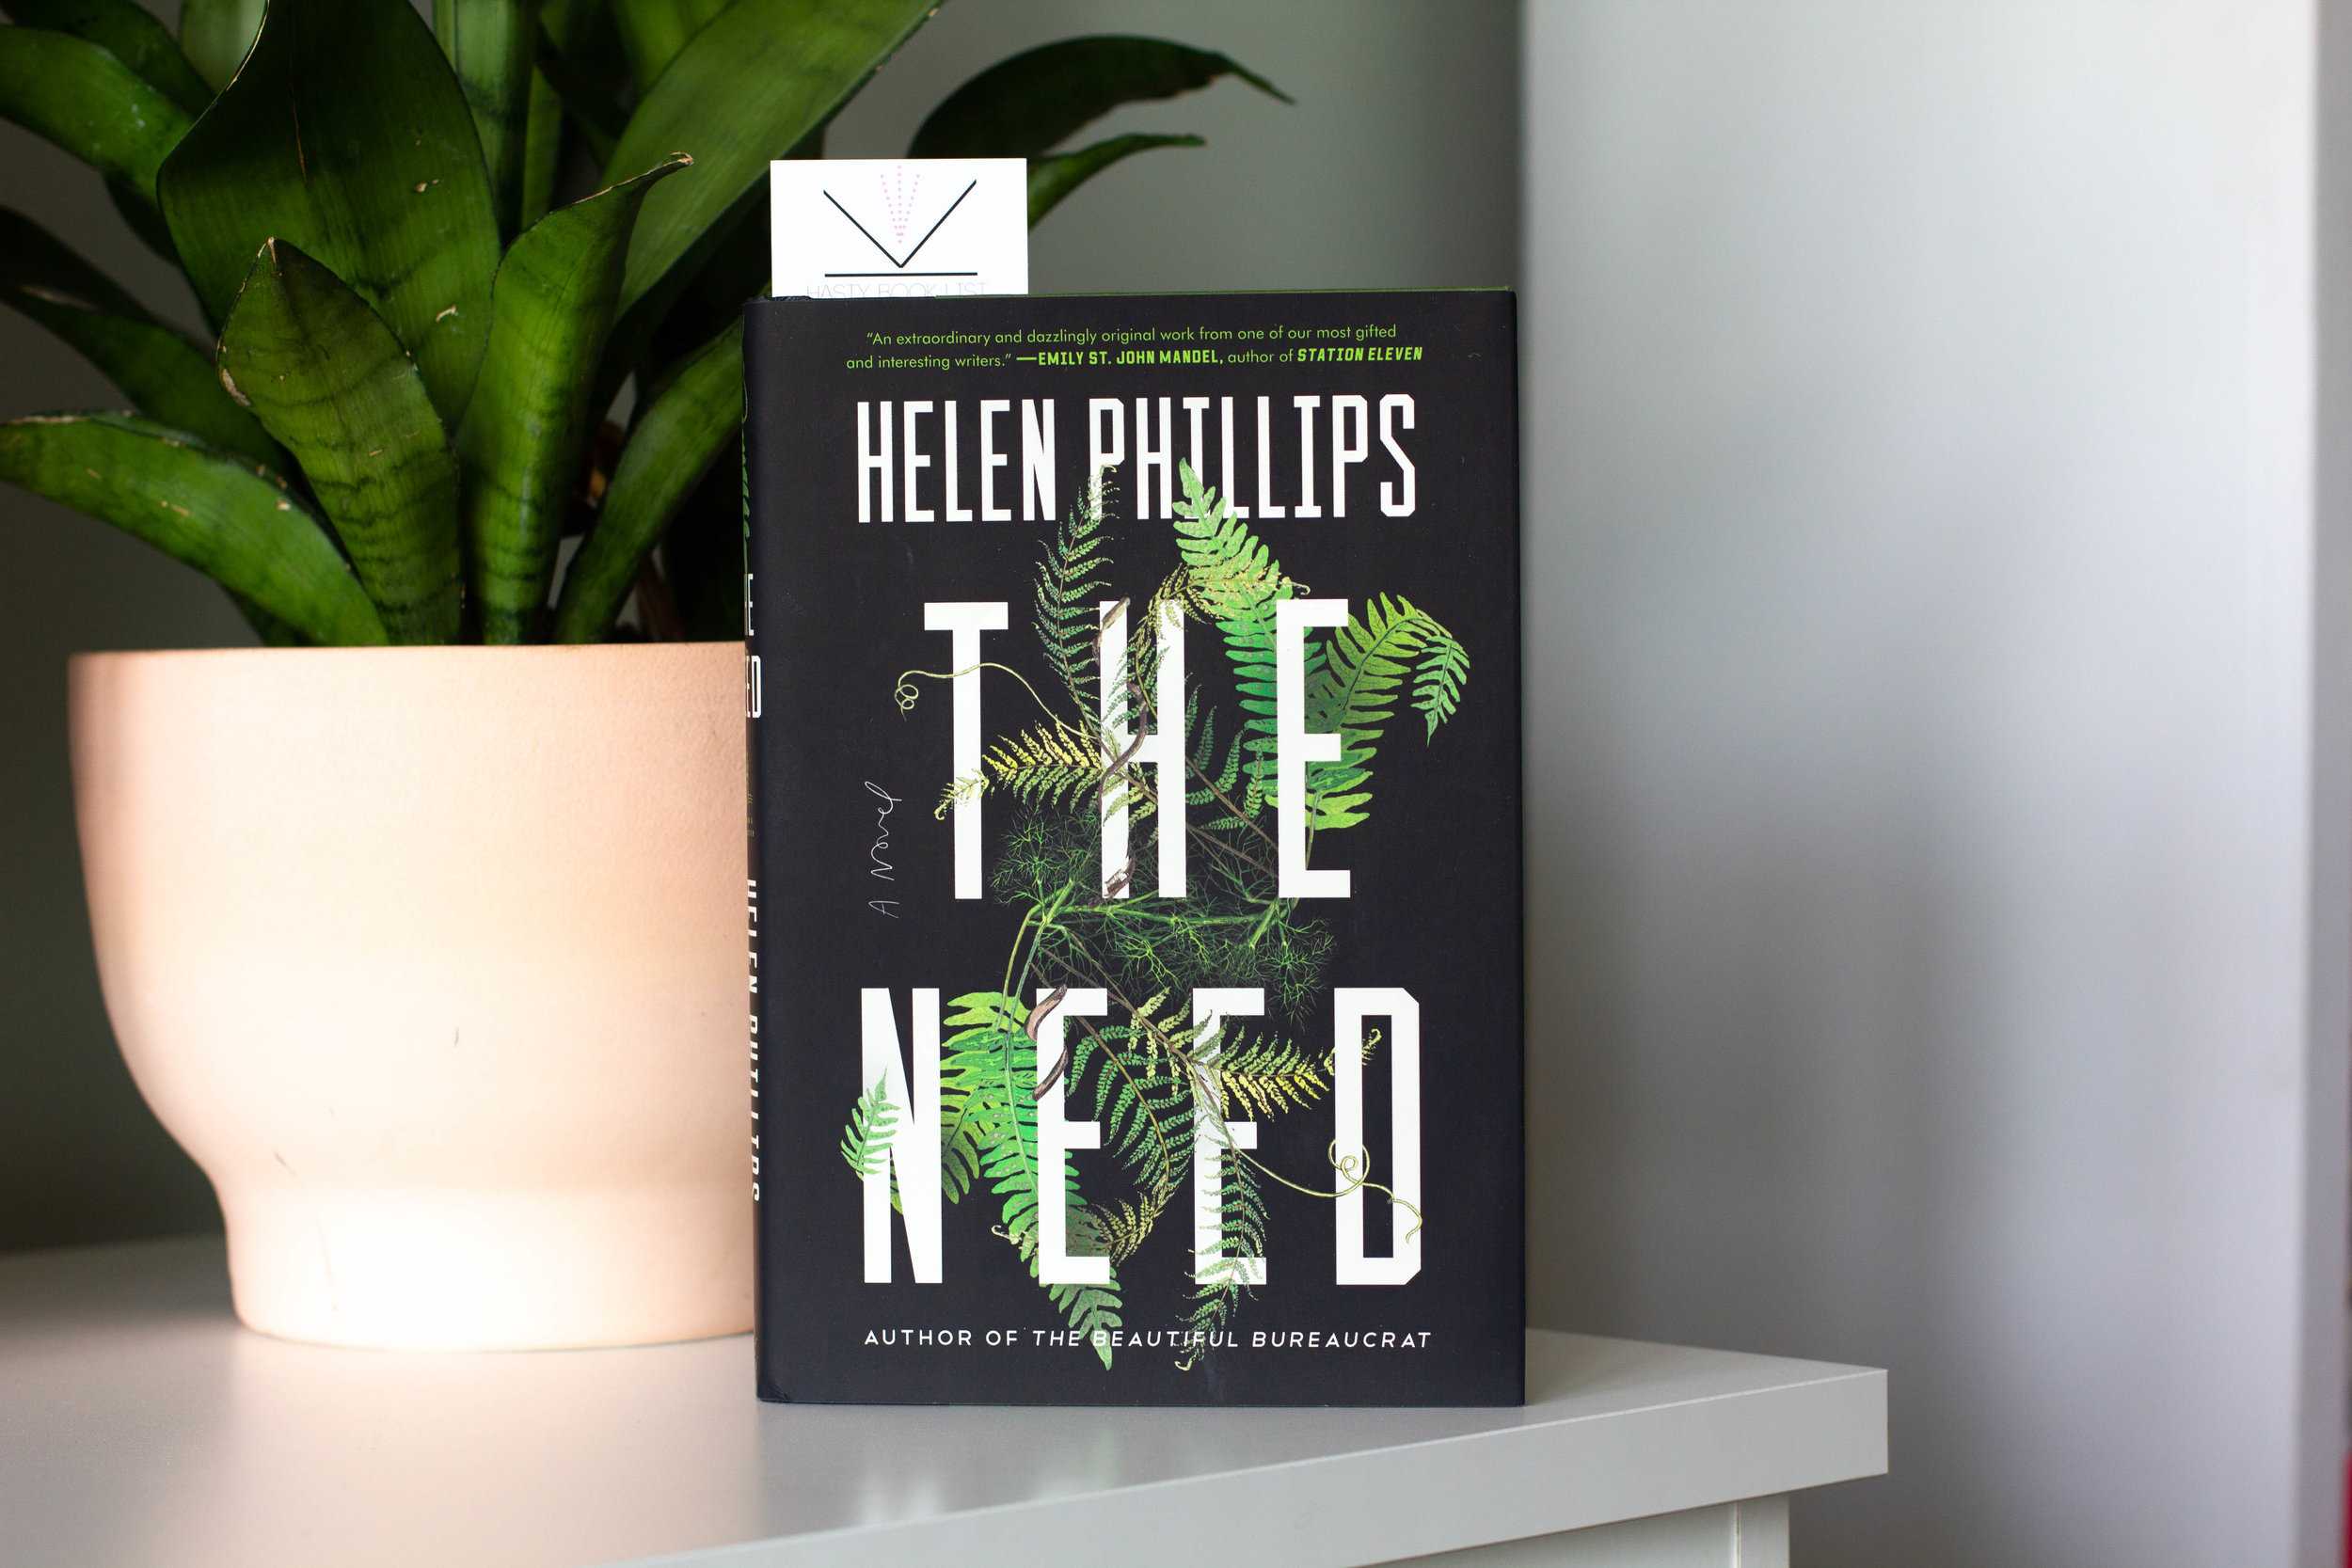 The Need by Helen Phillips - In The Need, Helen Phillips has created a subversive, speculative thriller that comes to life through blazing, arresting prose and gorgeous, haunting imagery. Helen Phillips has been anointed as one of the most exciting fiction writers working today, and The Need is a glorious celebration of the bizarre and beautiful nature of our everyday lives.